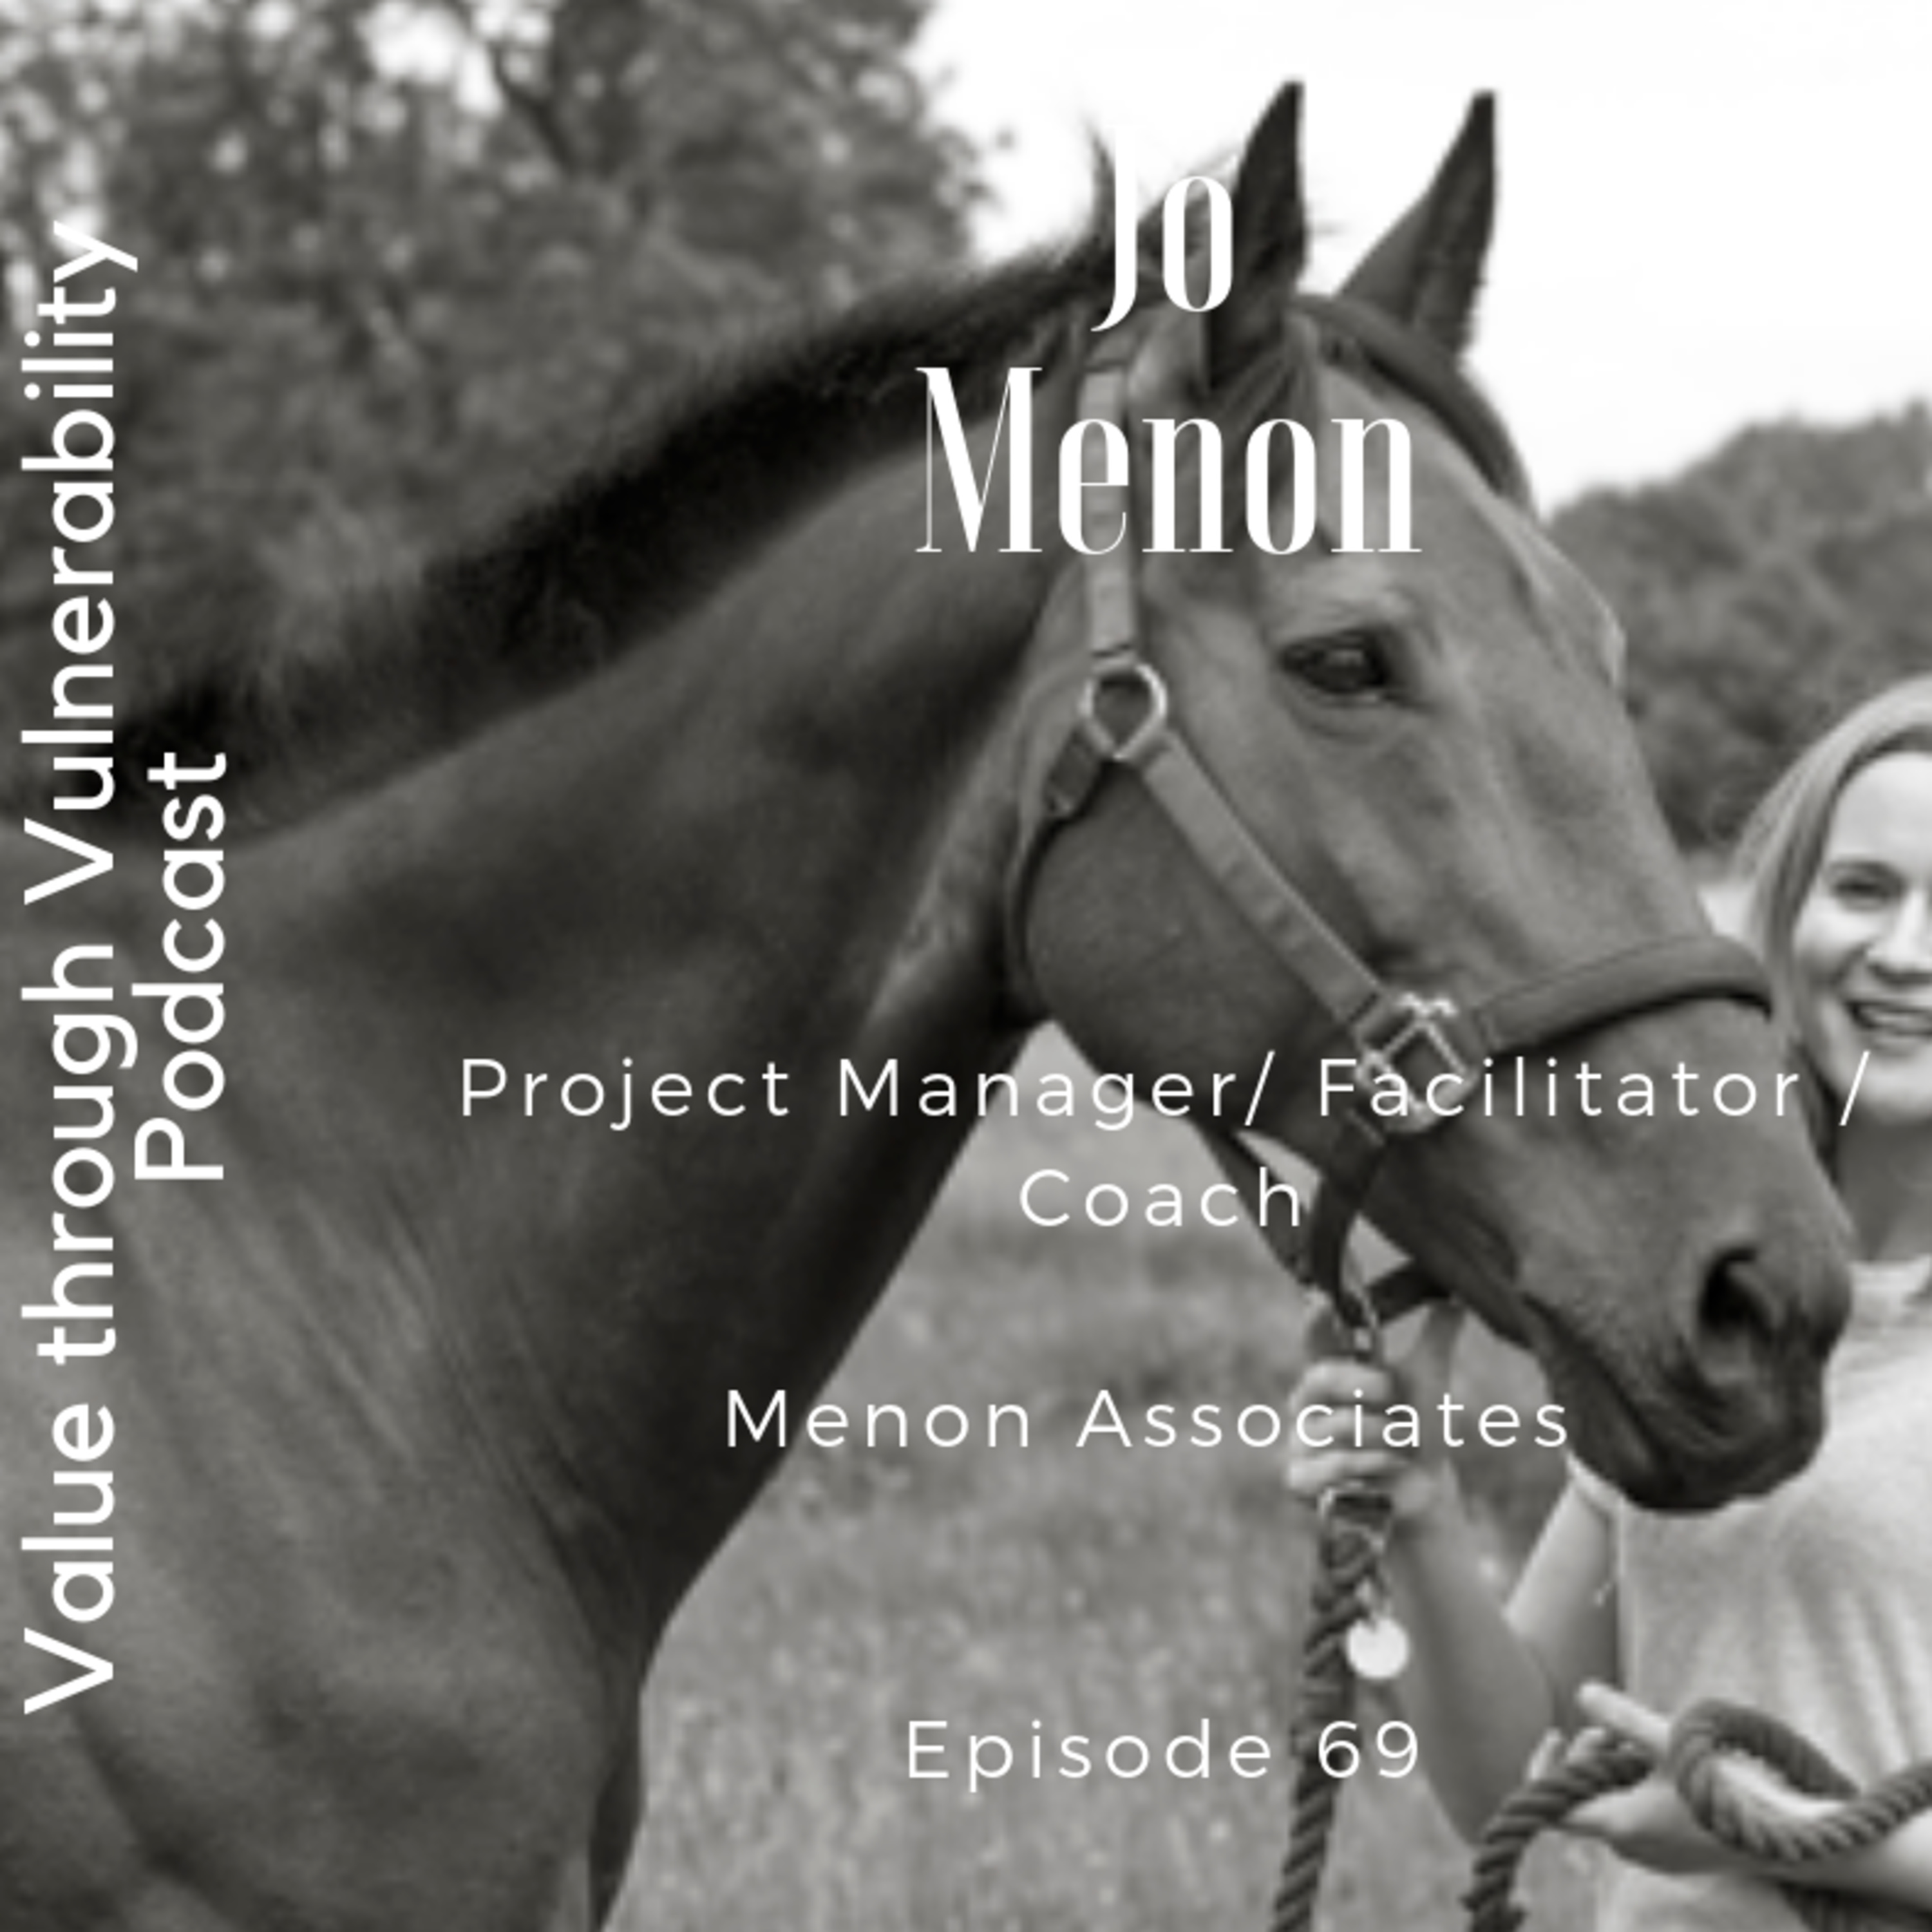 Episode 69 - Jo Menon, Founder Menon Associates